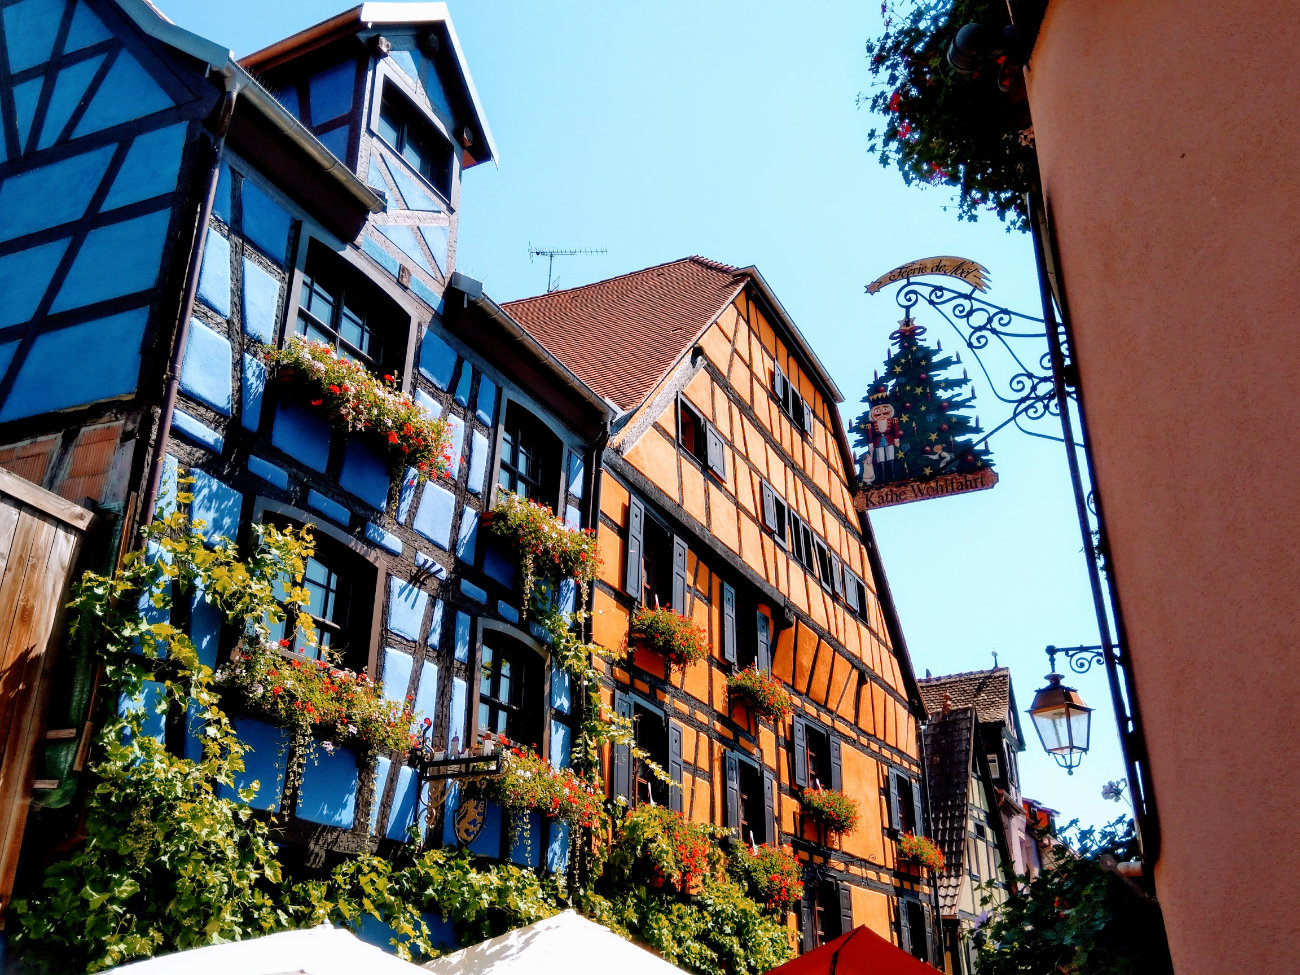 The Enchanting Medieval village: Colmar in France